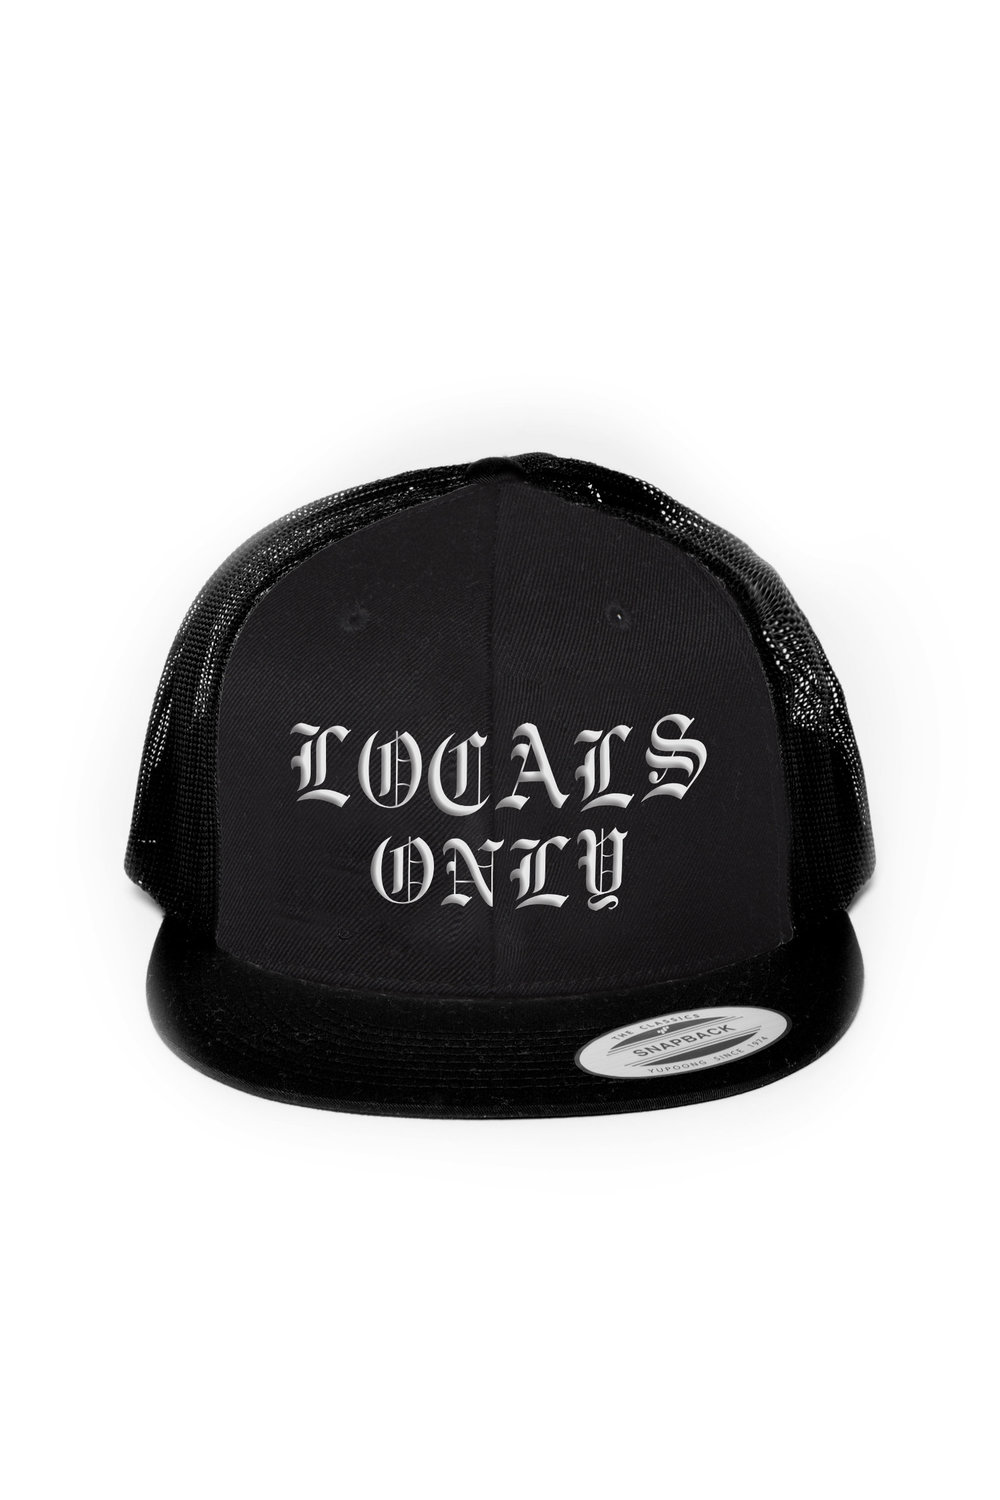 LOCALS ONLY TRUCKER.jpg